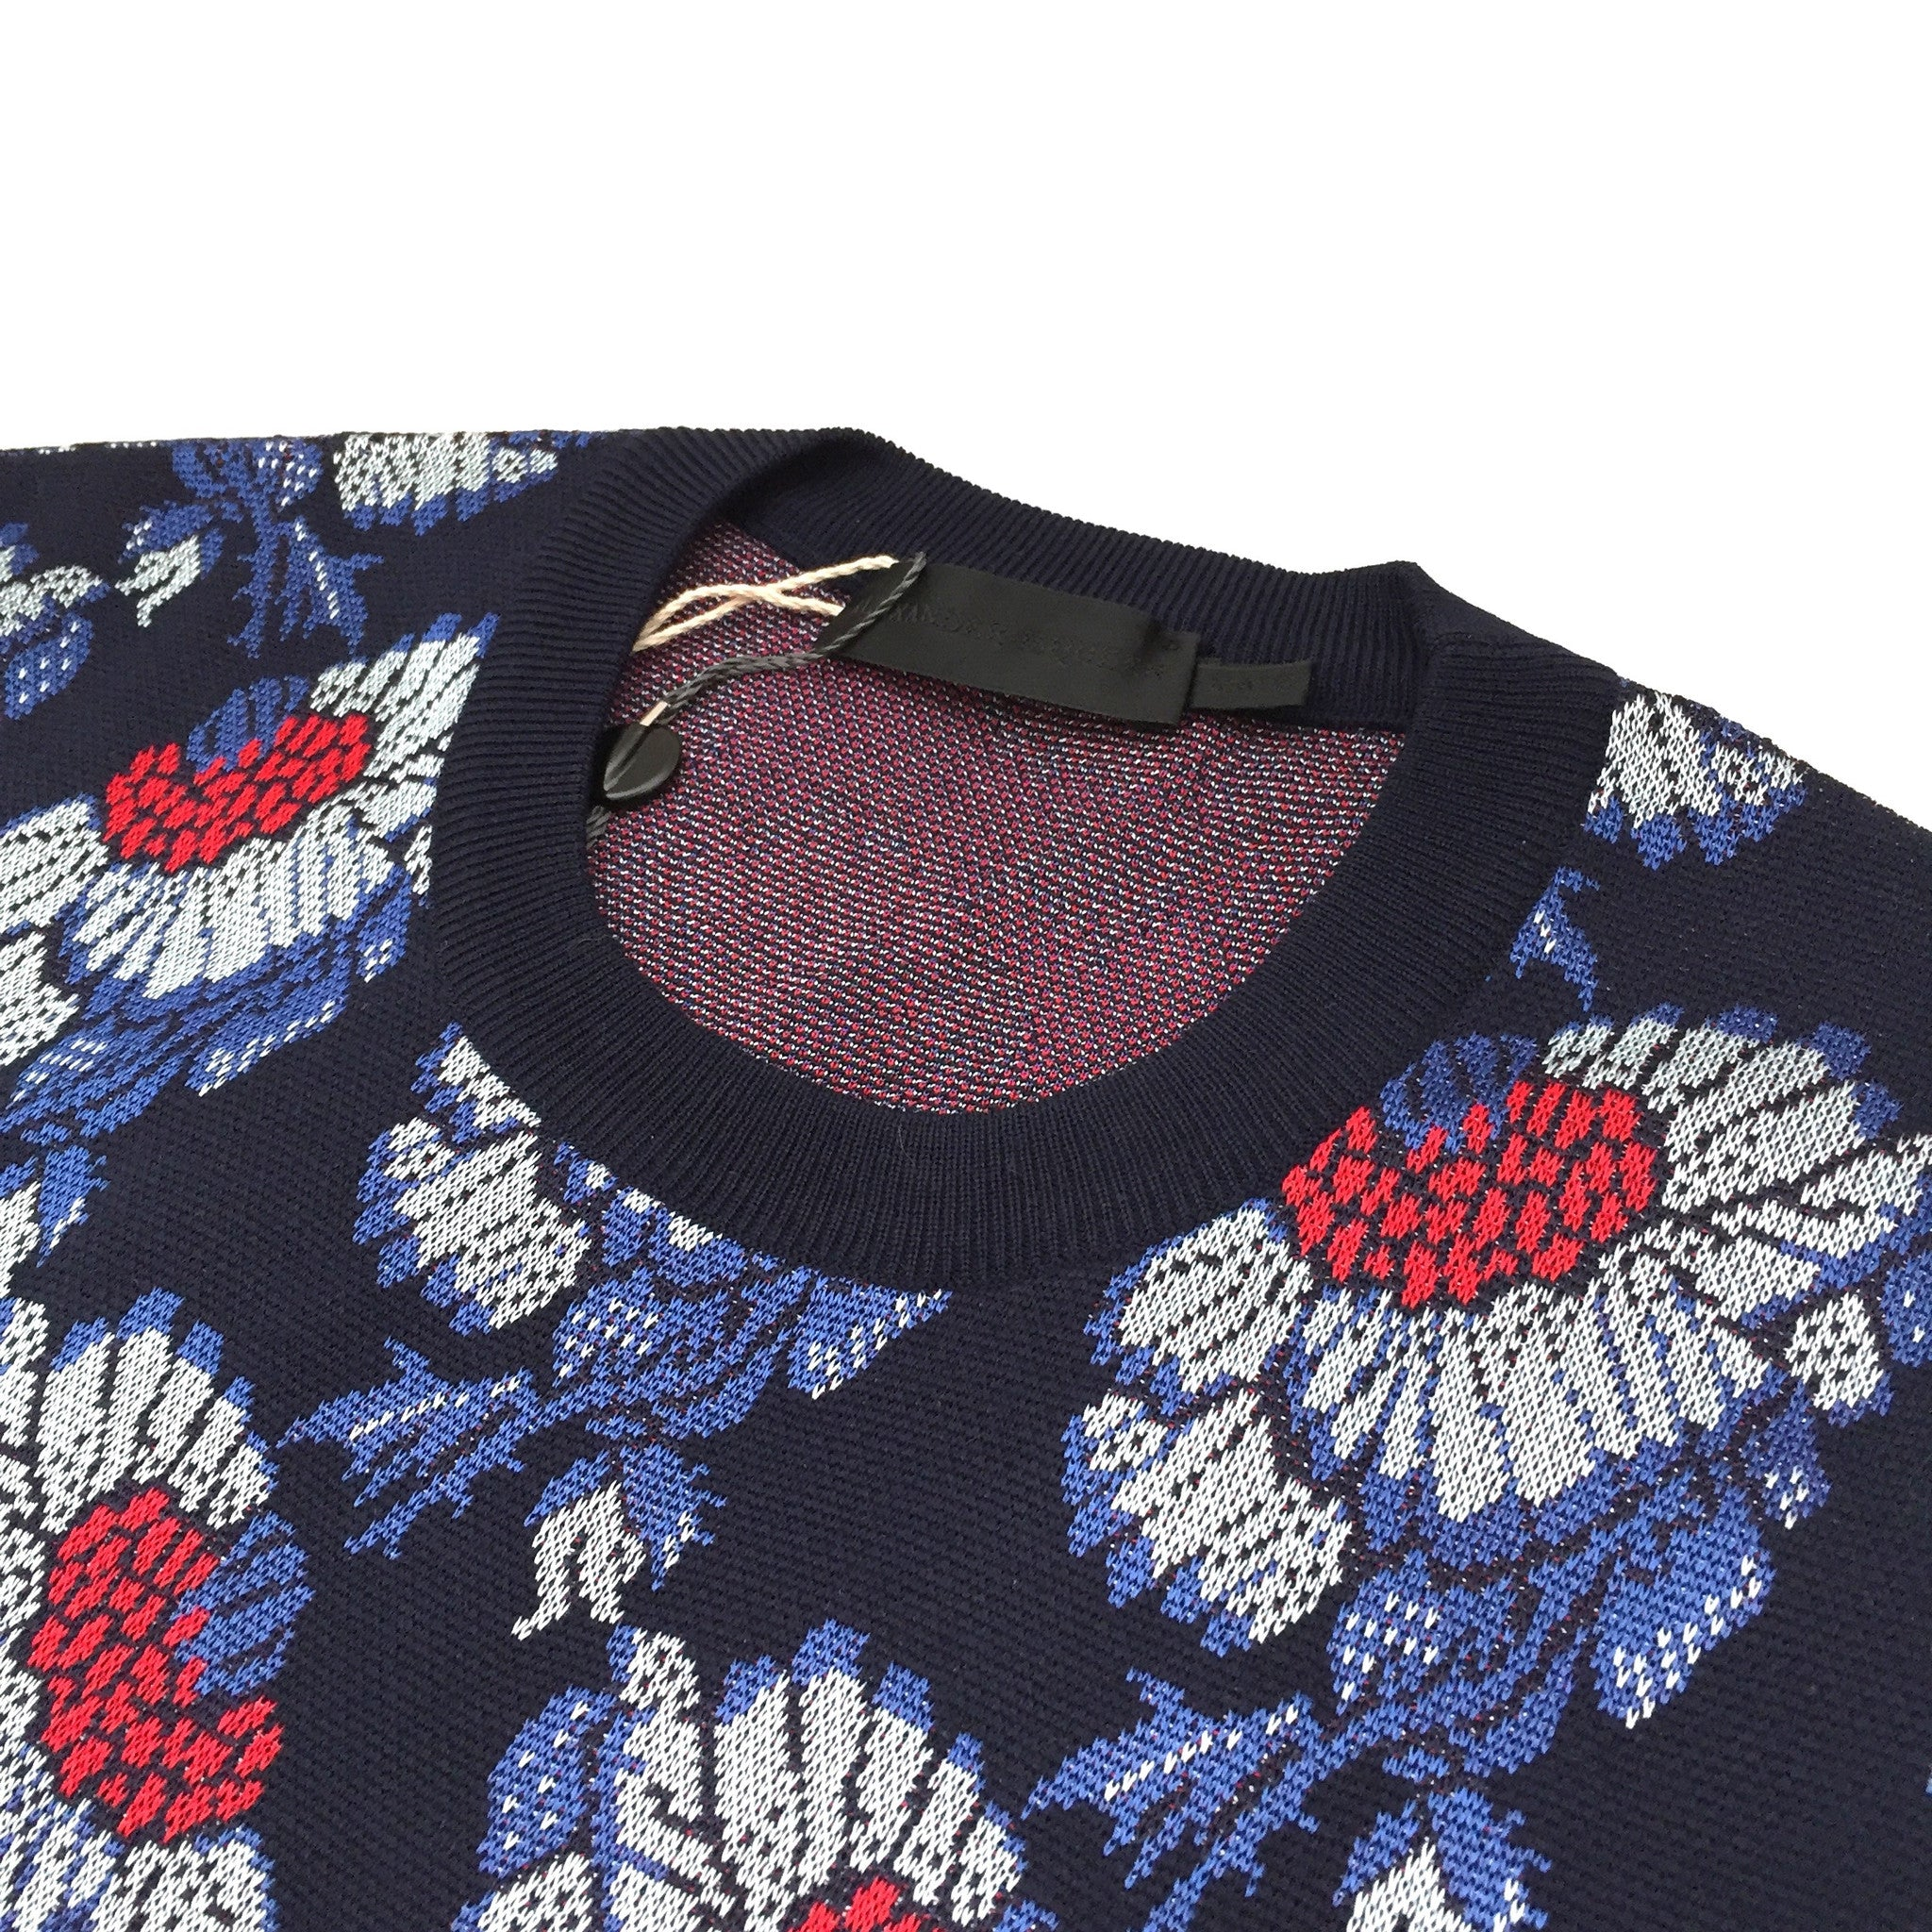 Alexander McQueen - Jacquard Knit Floral Sweater